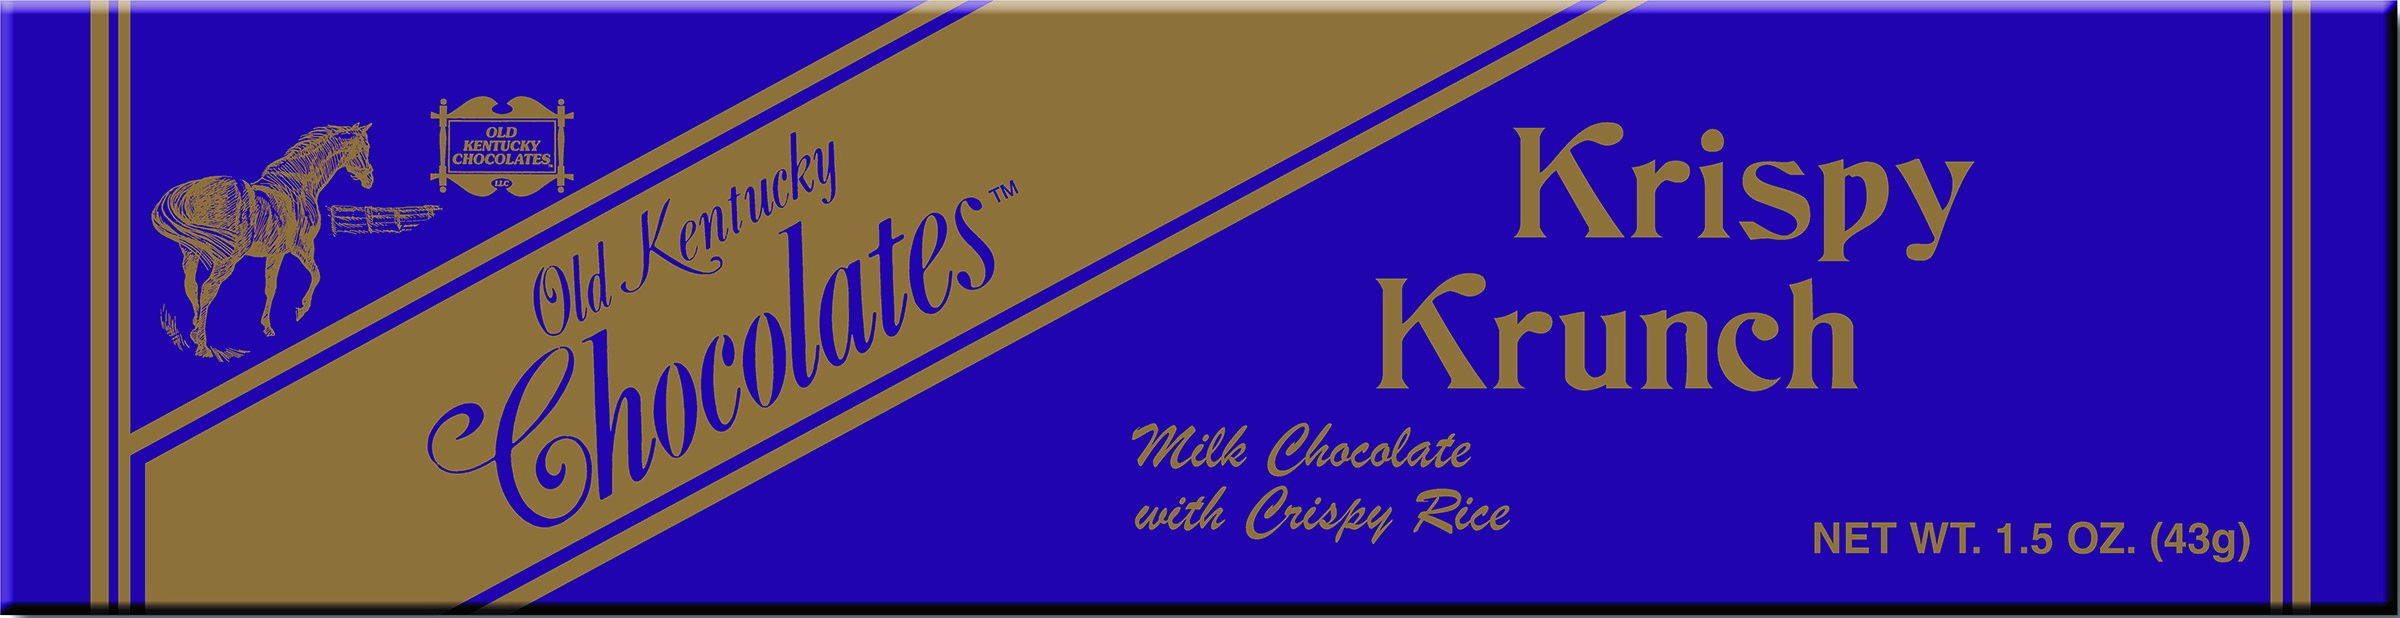 Old Kentucky Chocolates Krispy Krunch Fundraising